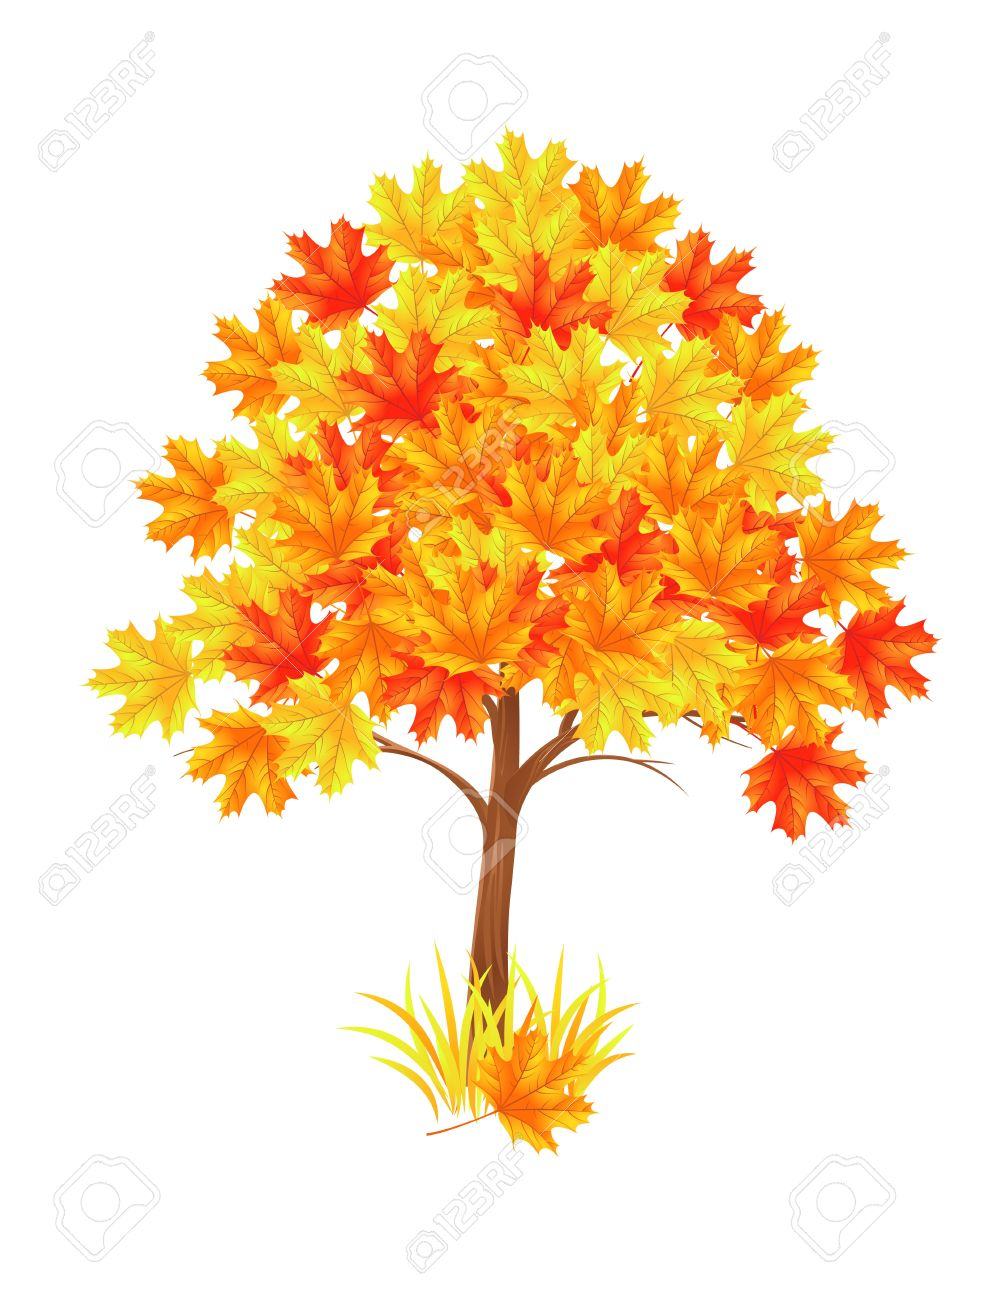 The Red Maple Tree. Vector Illustration Royalty Free Cliparts.